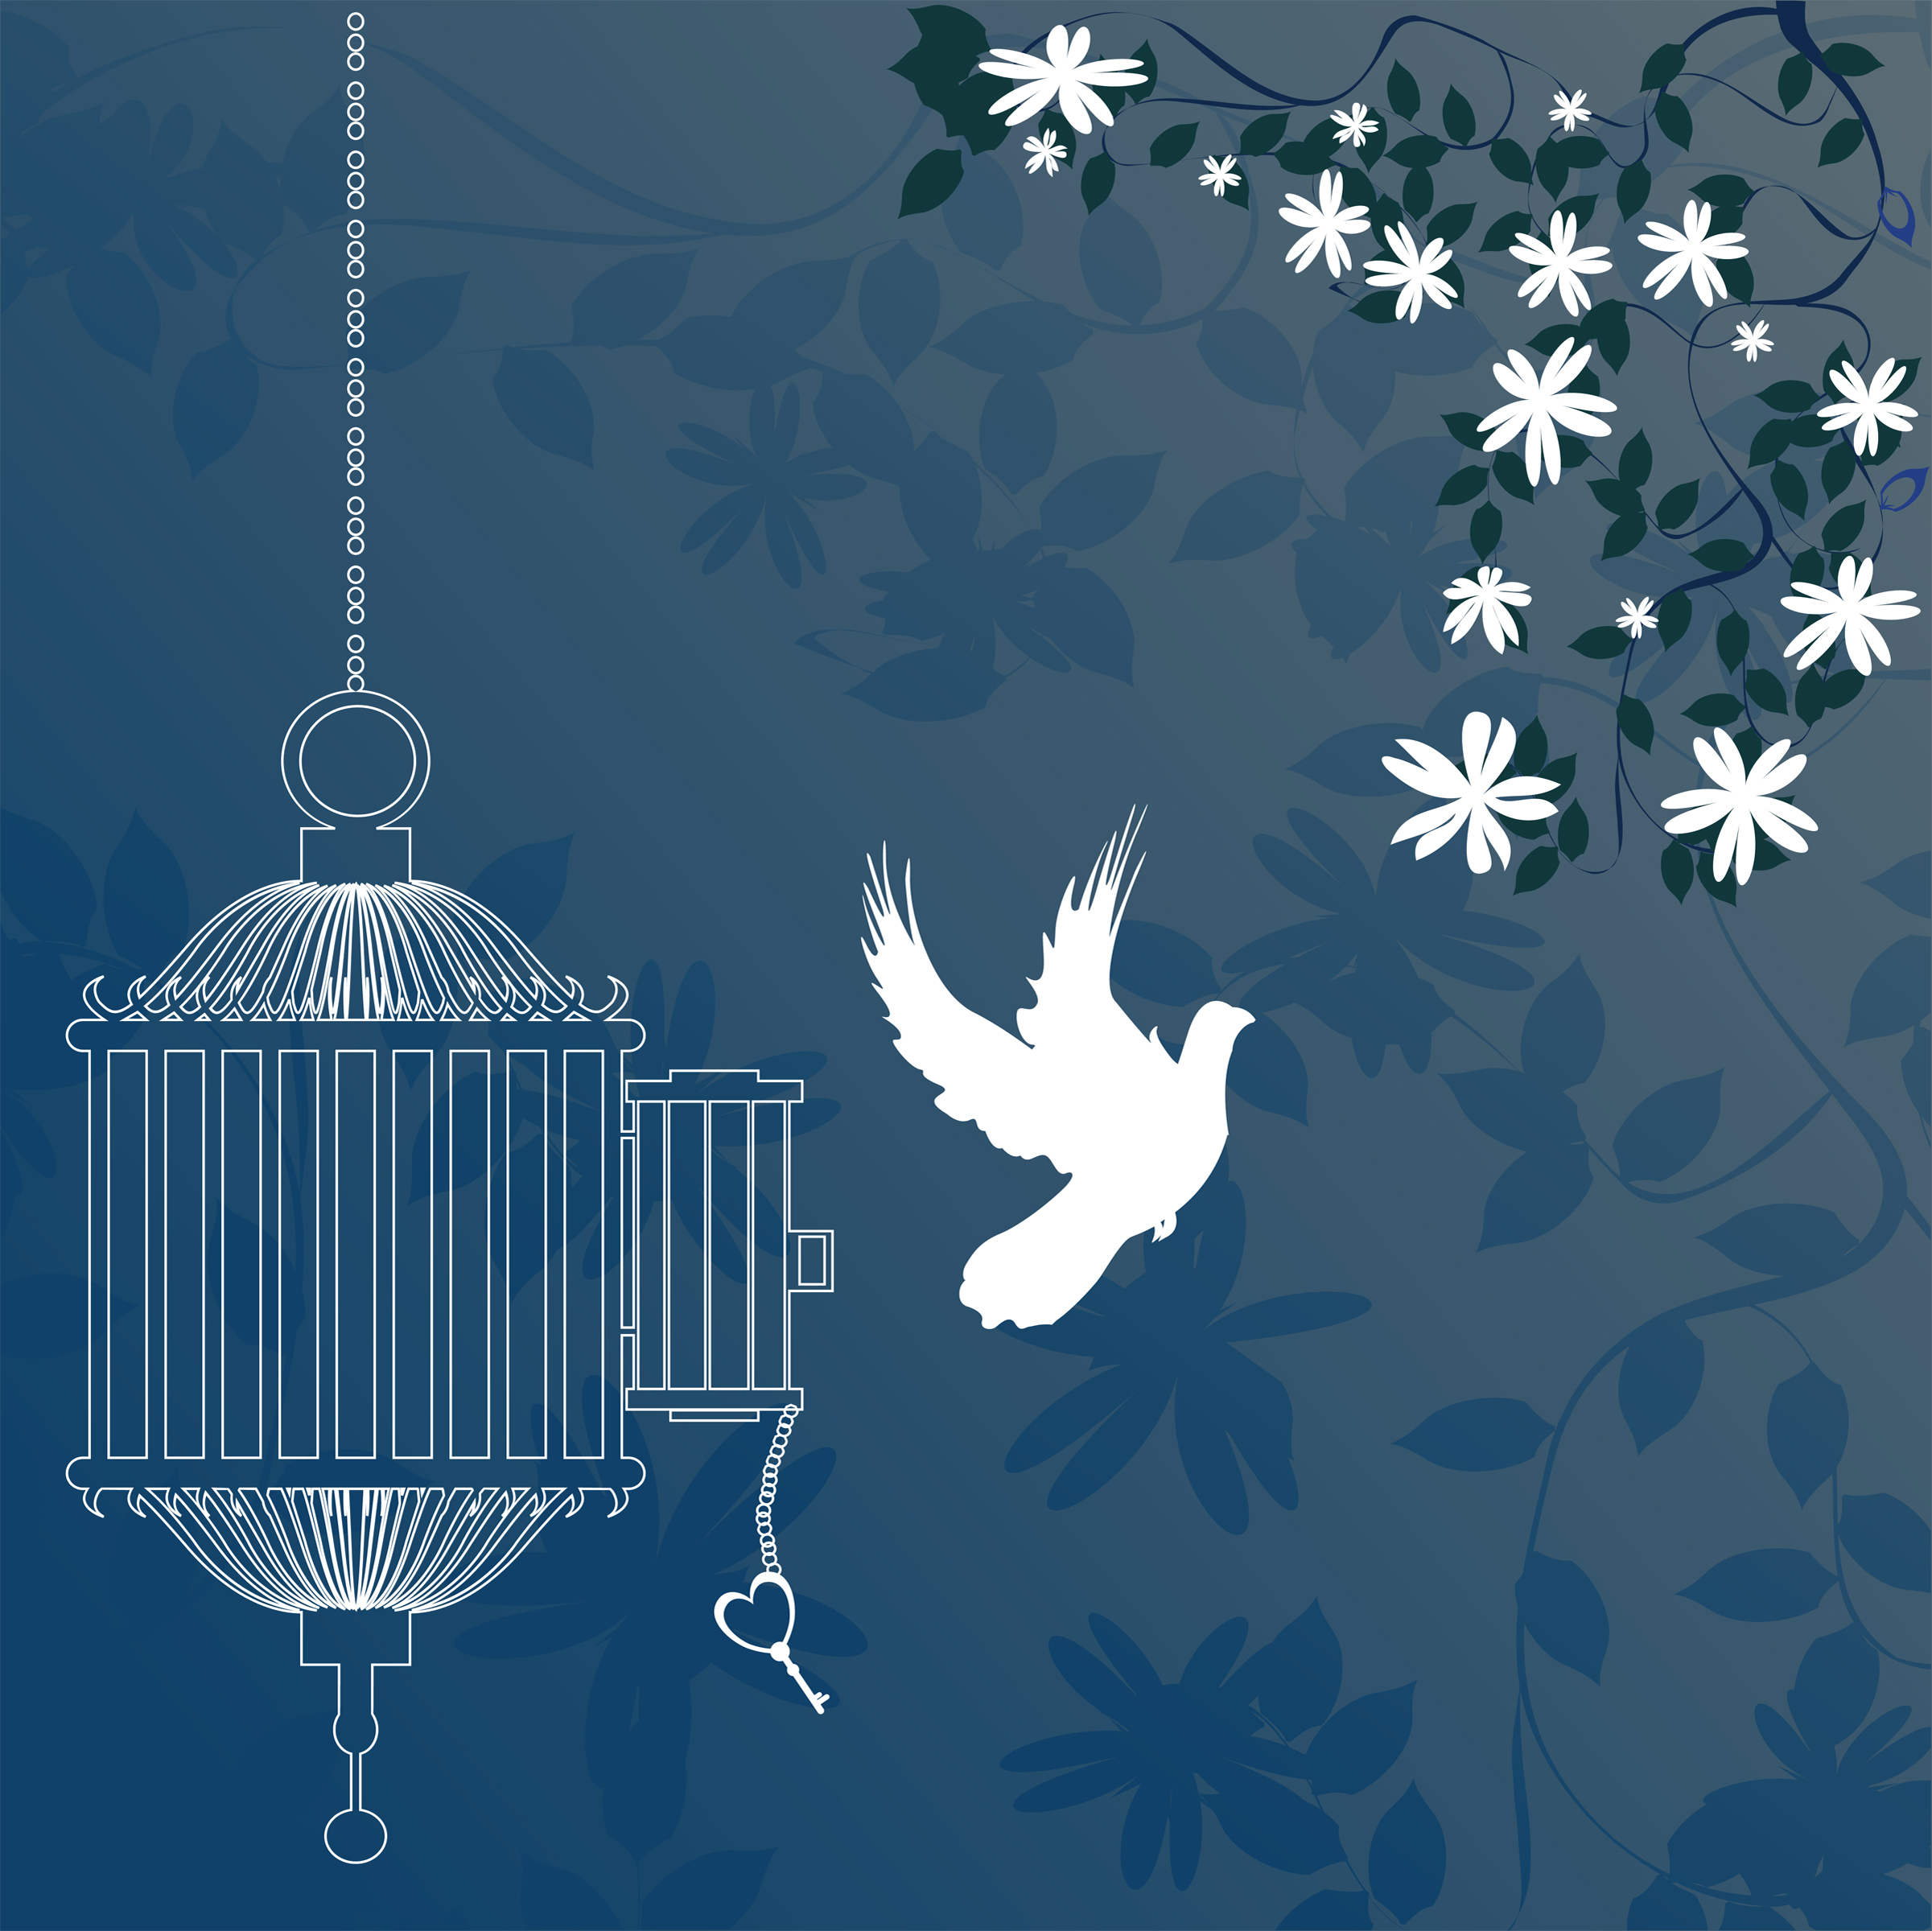 Cage clipart freedom bird Hands Illustrations With more Own